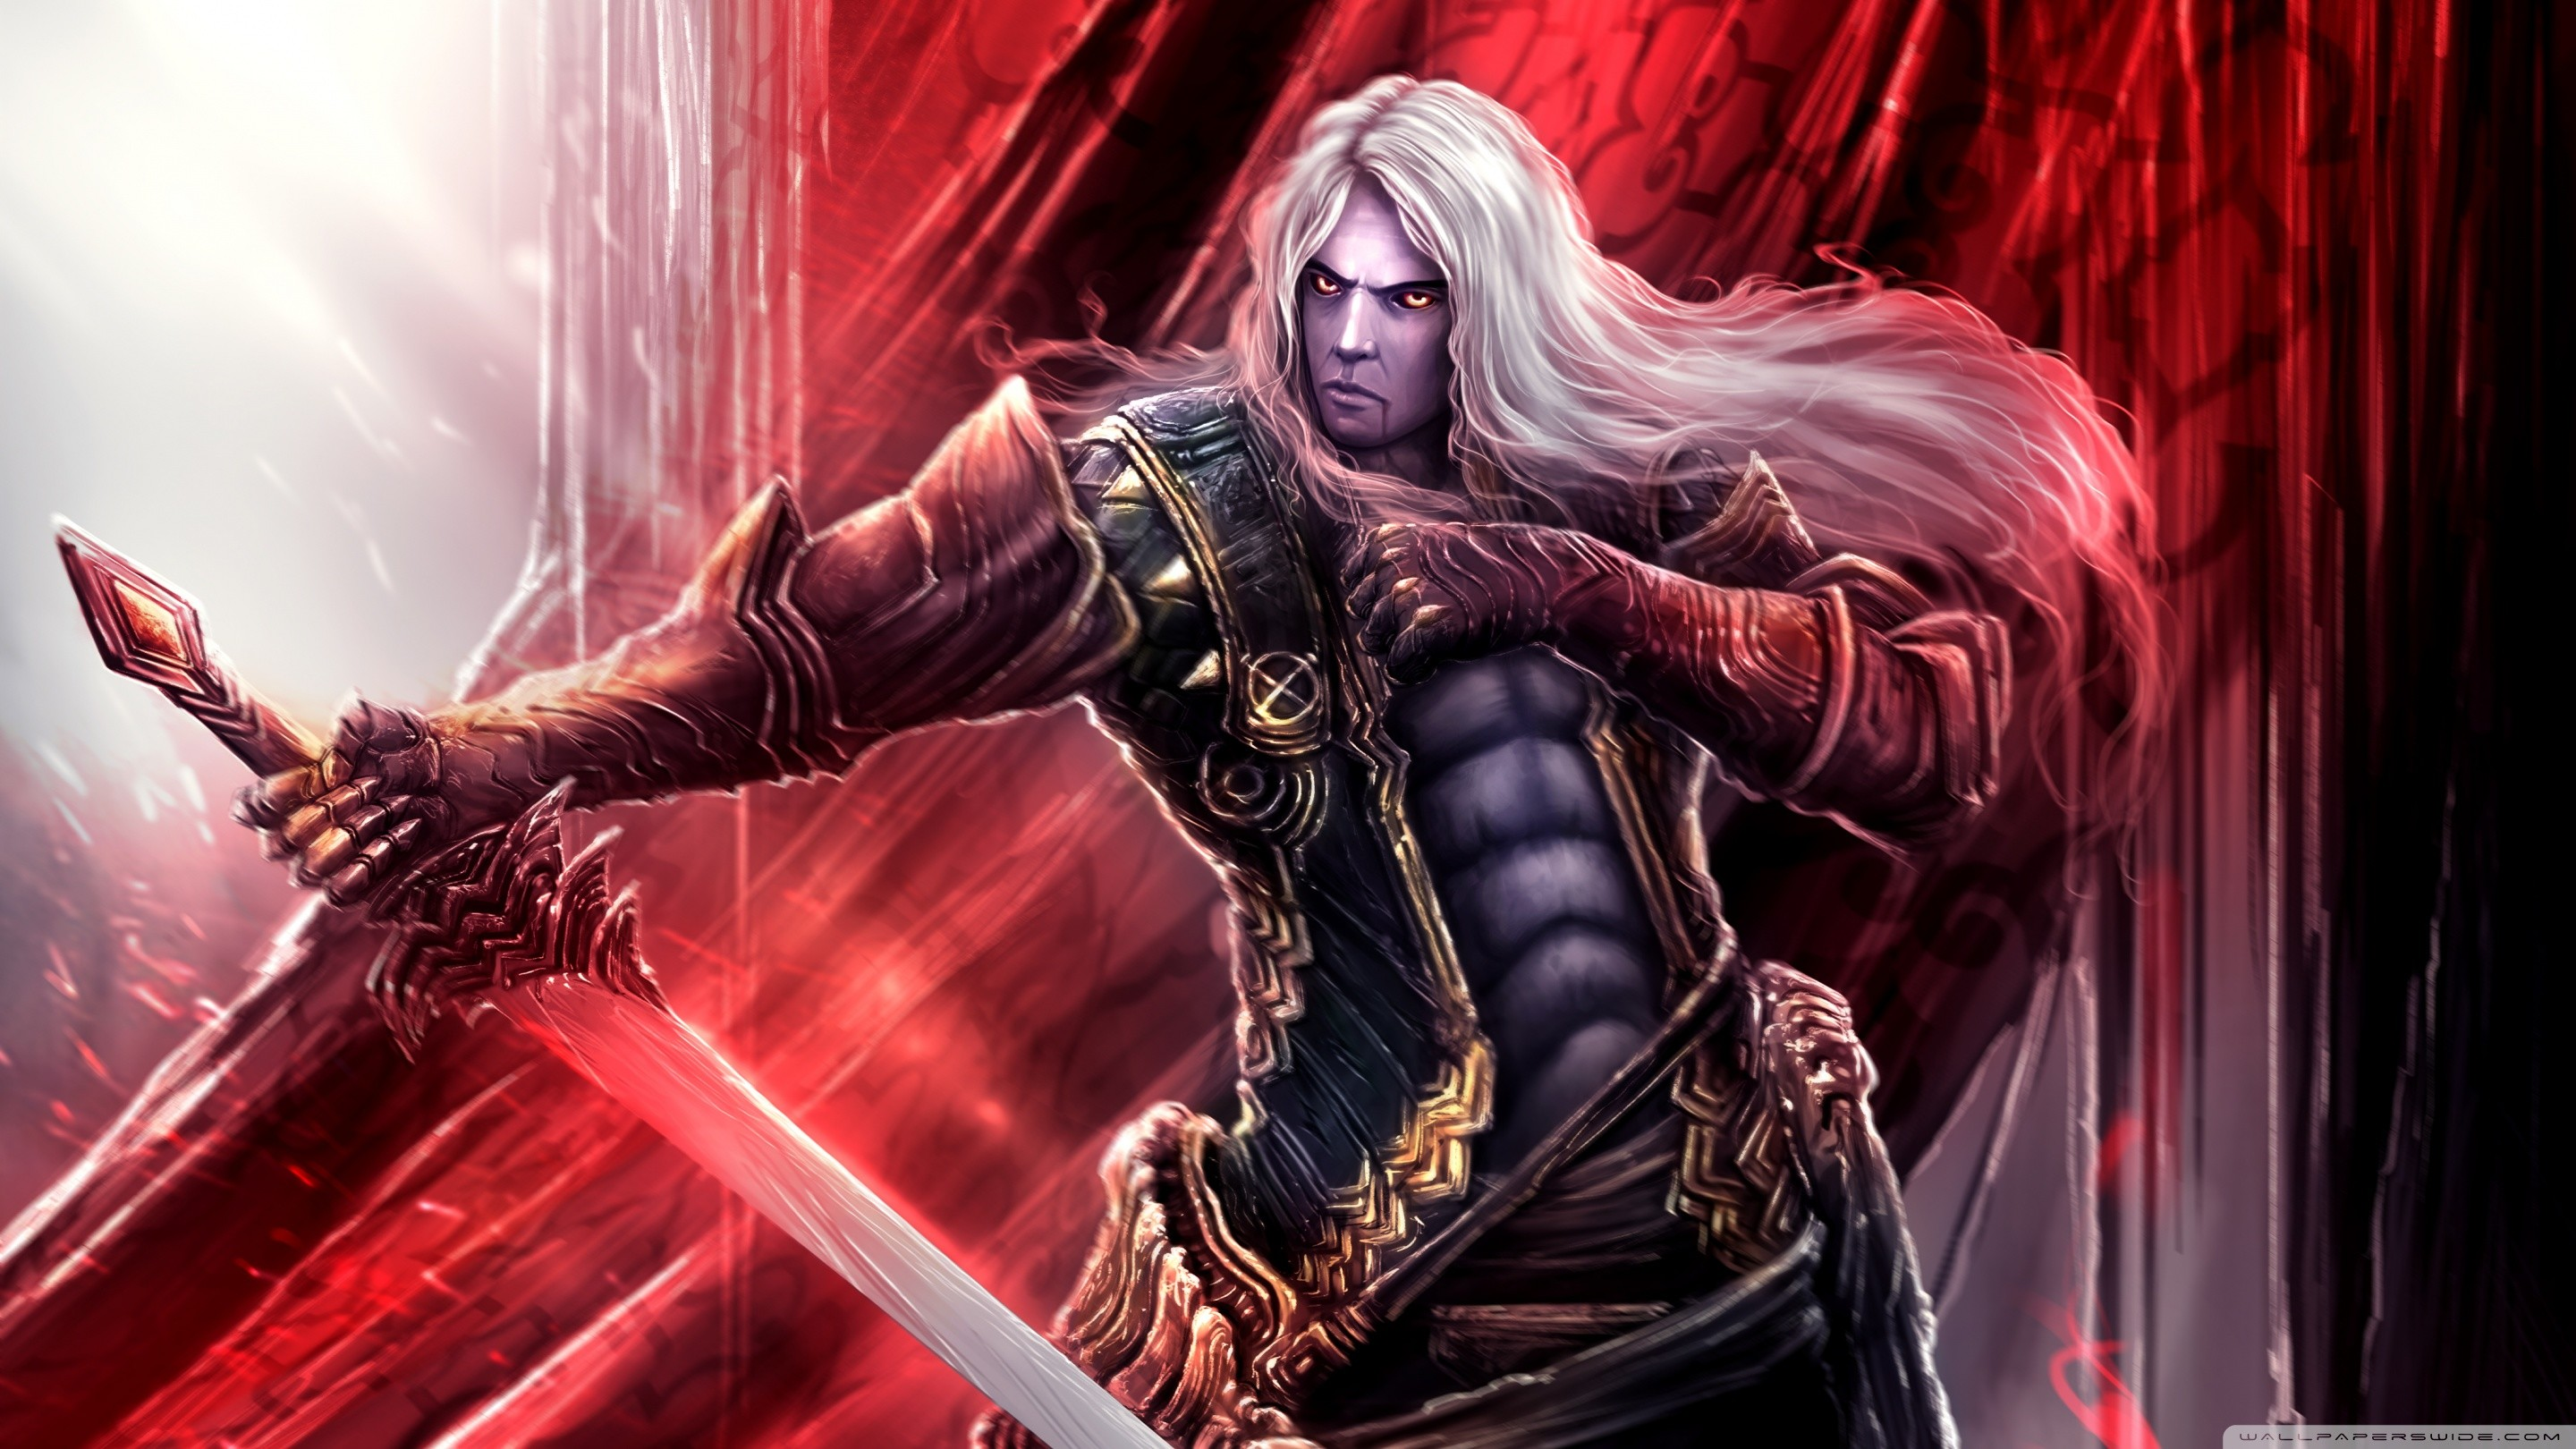 Castlevania Wallpapers Hd Wallpaper Collections 4kwallpaper Wiki